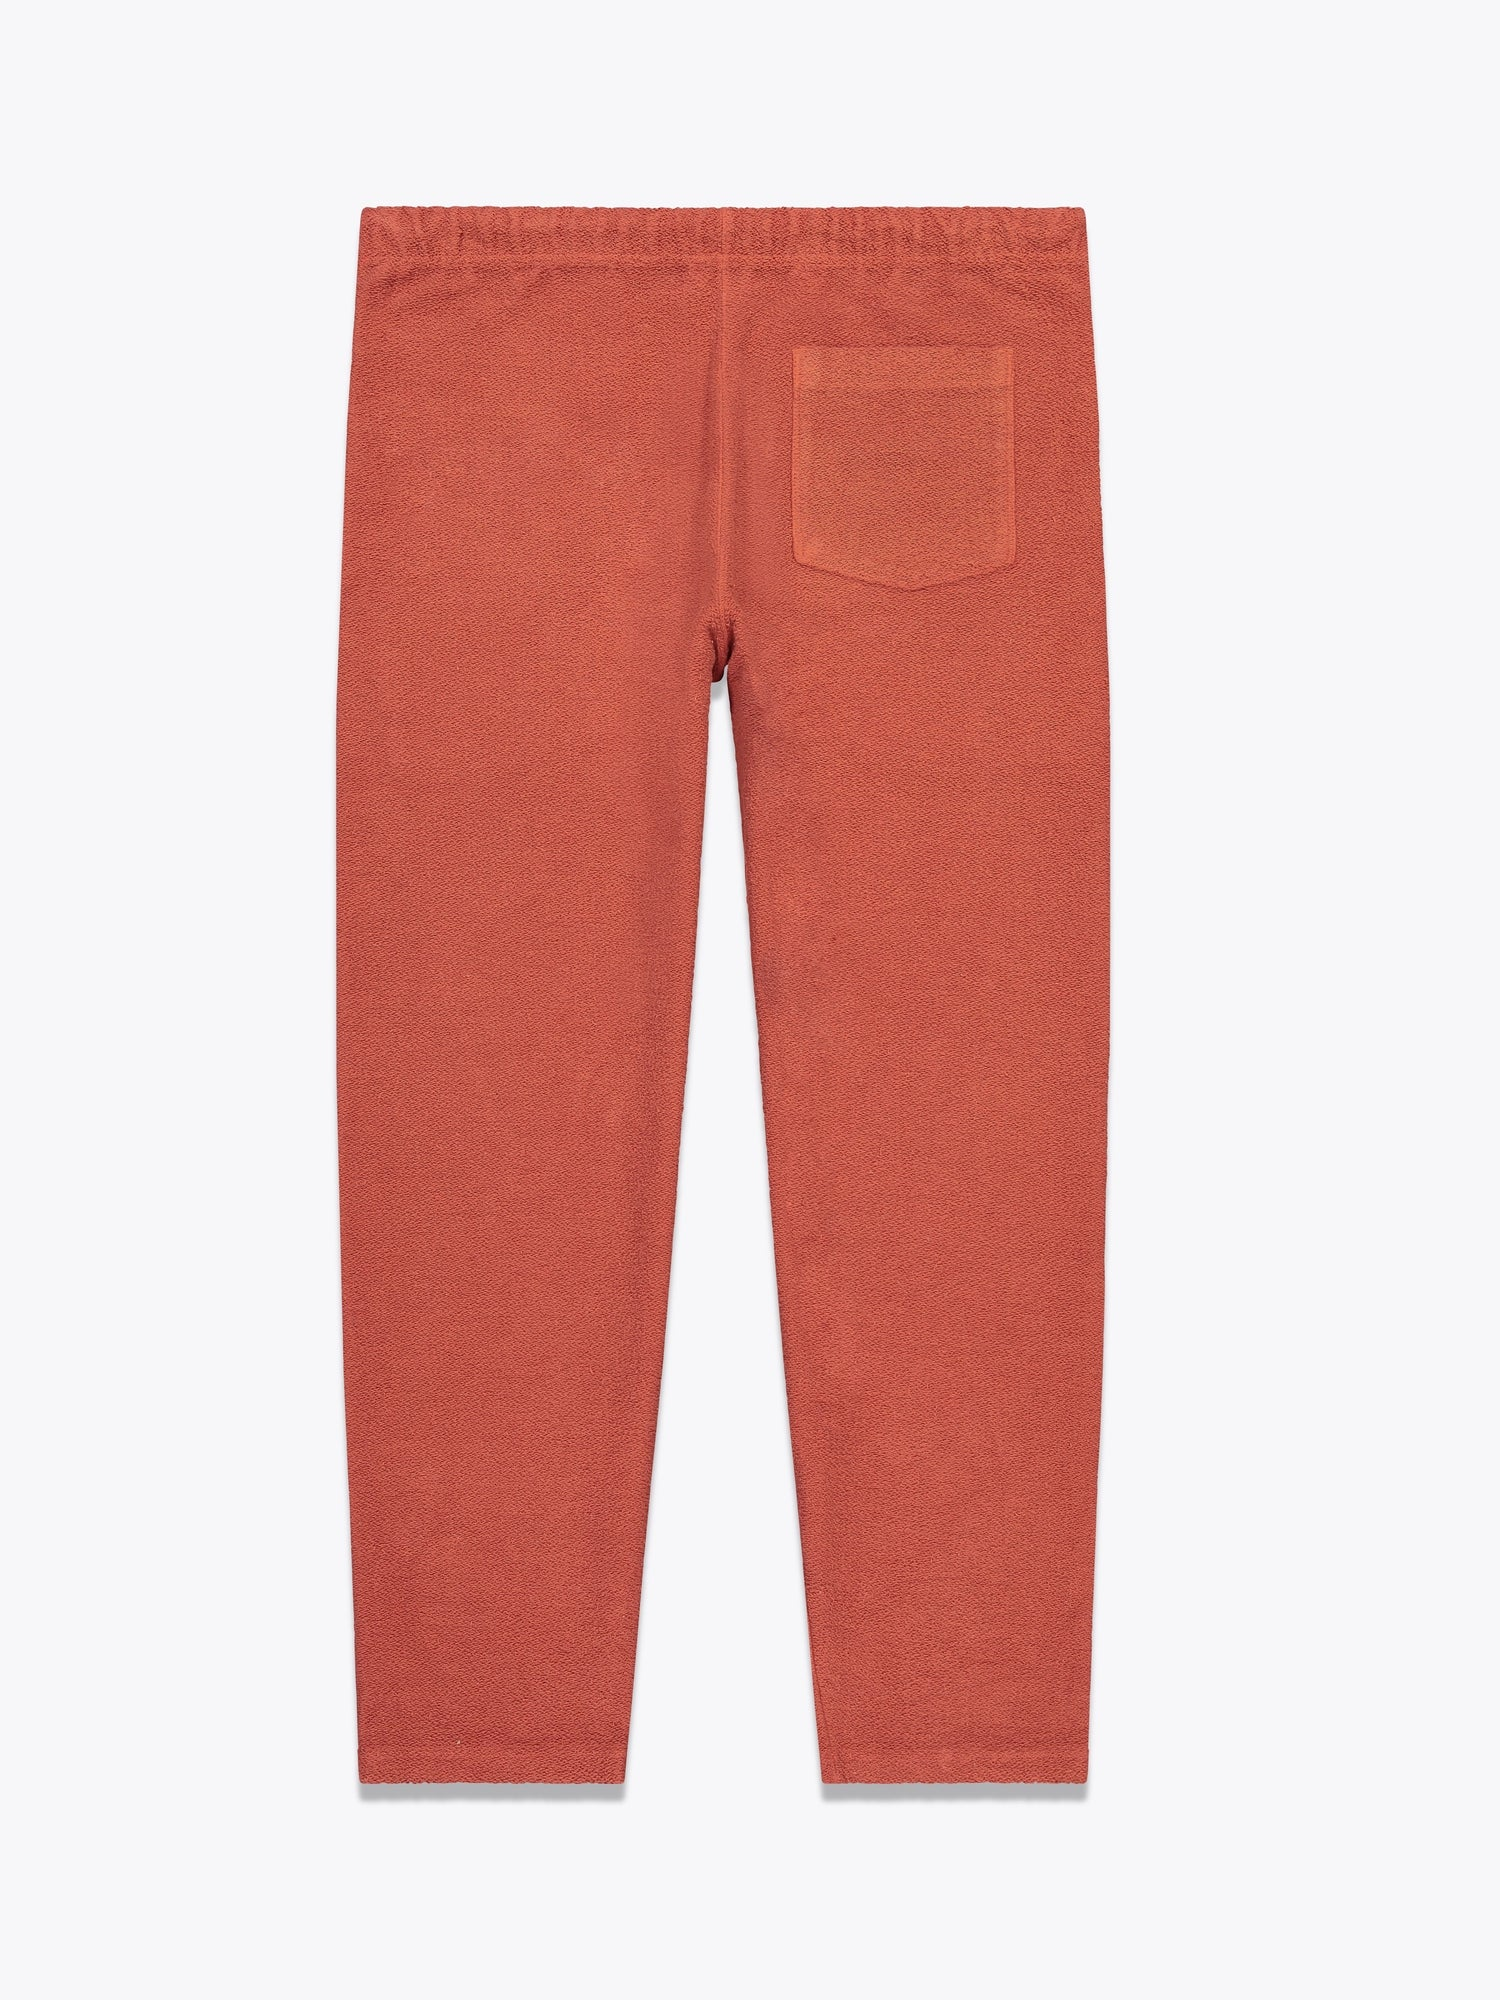 Camp Fit Sweatpants - Rust (Pre-order)